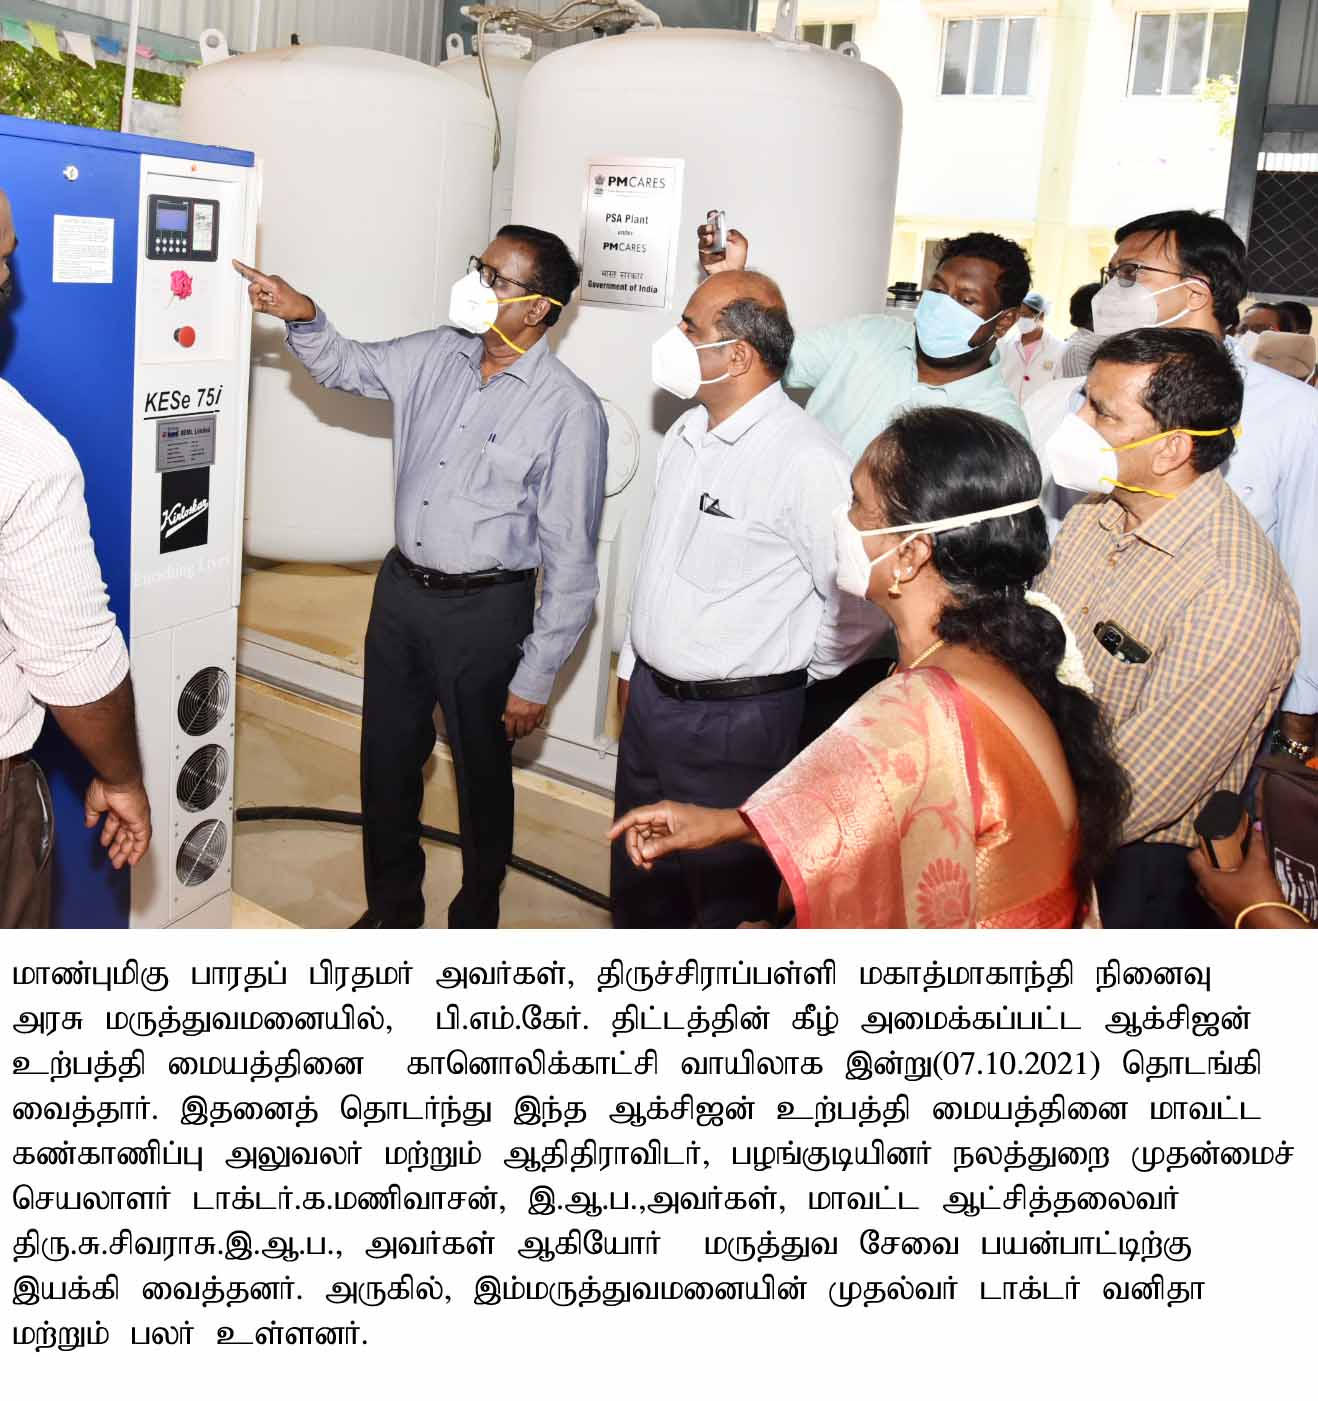 District Collector visited Oxygen production cdfenter on 07.10.2021